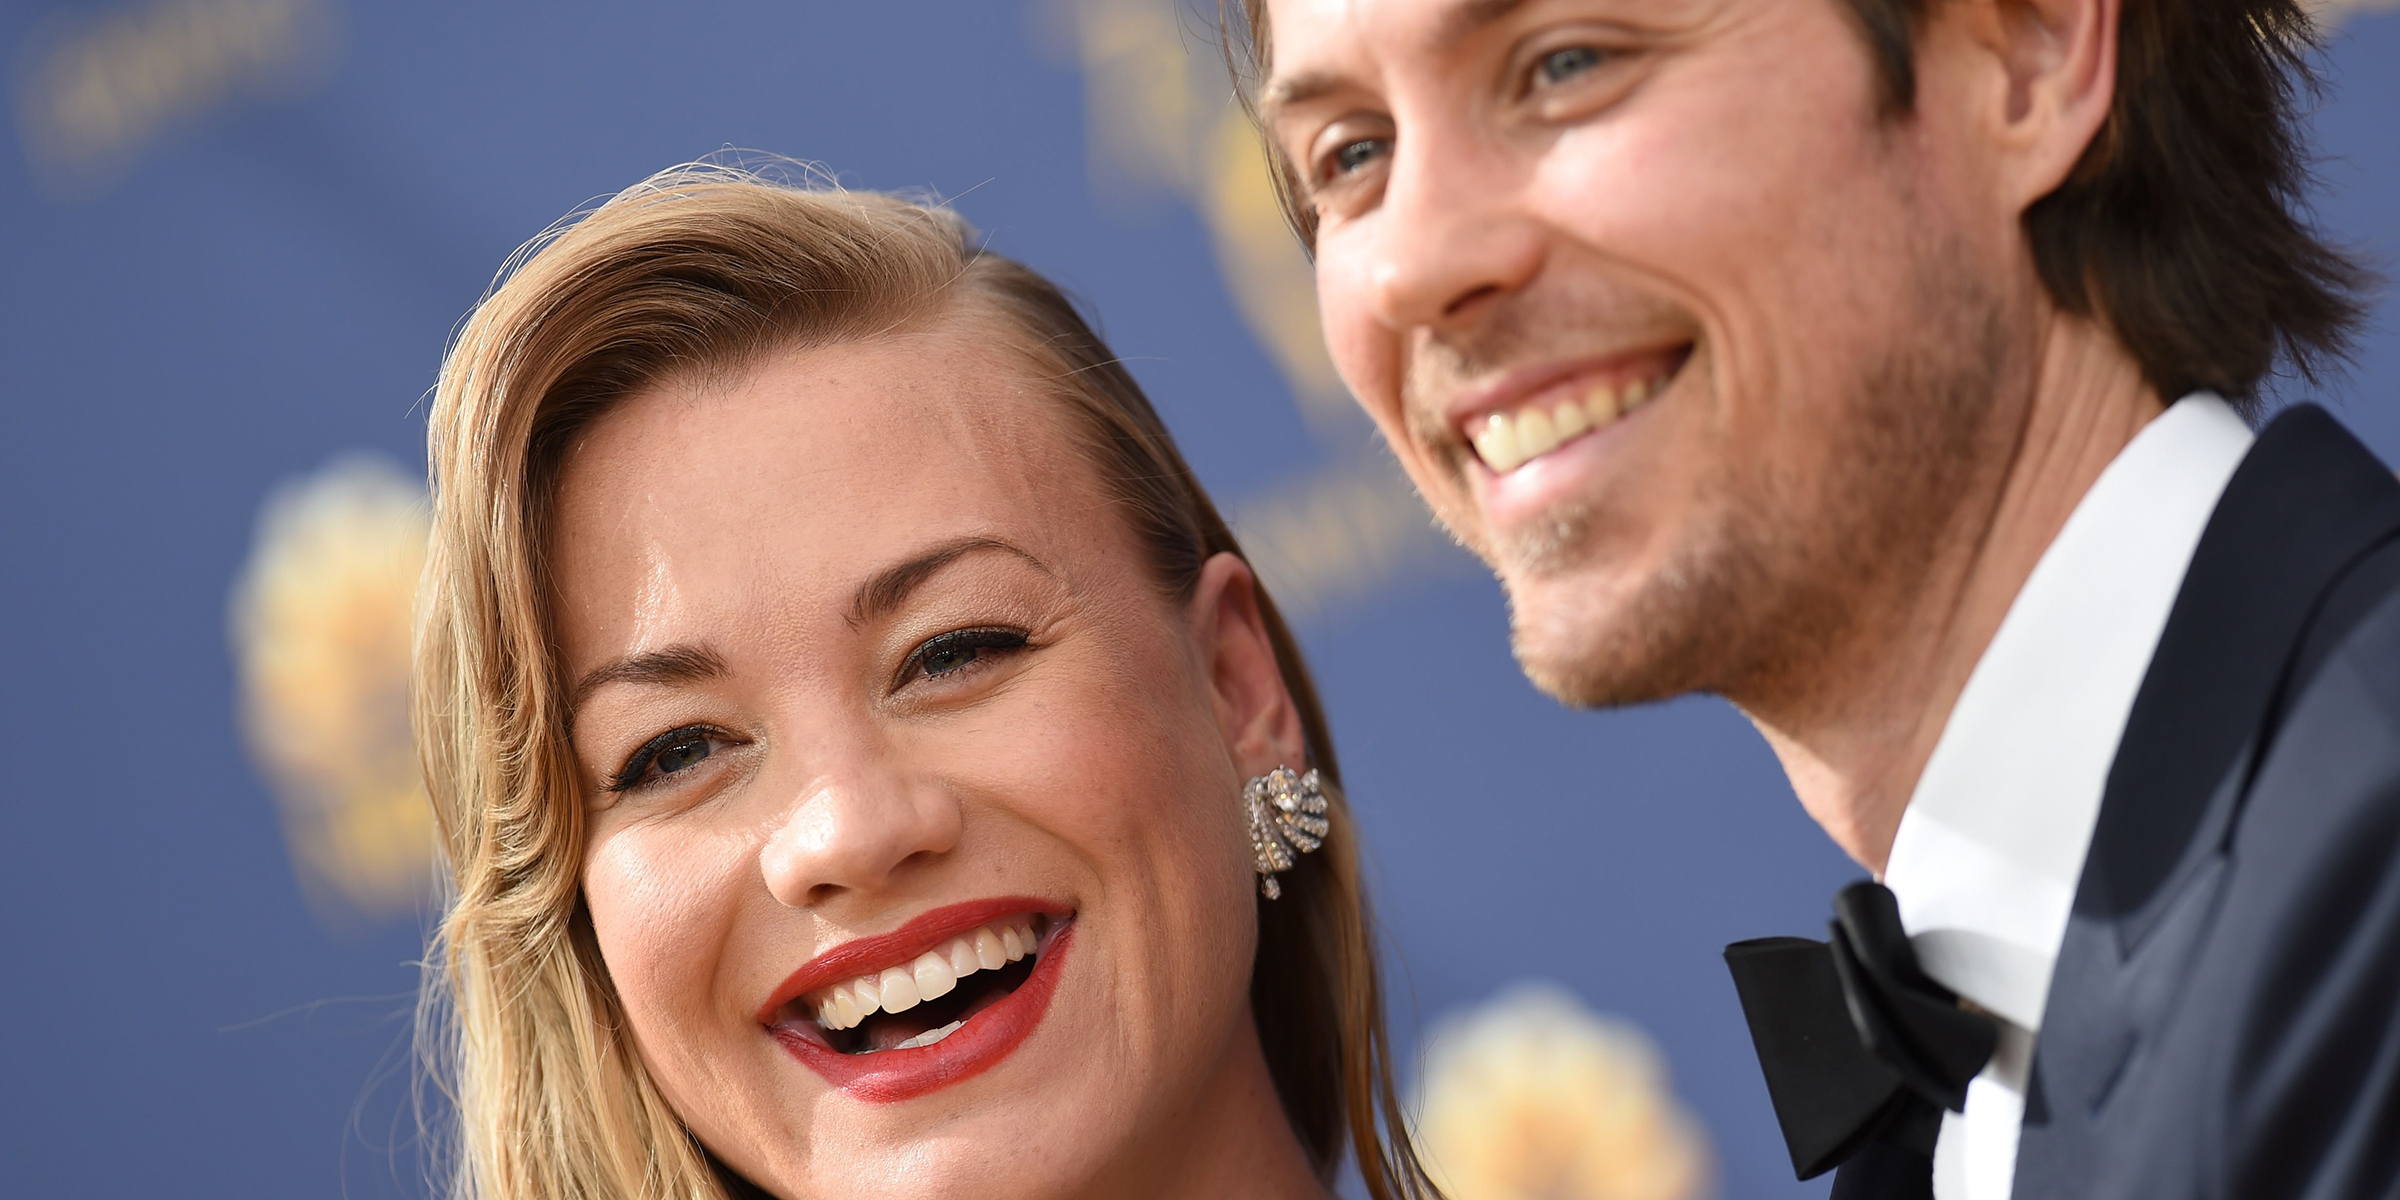 Handmaid S Tale Star Yvonne Strahovski Welcomes Baby Boy See The 1st Pic Tim loden and yvonne strahovski at the 69th emmy awards governors ball. handmaid s tale star yvonne strahovski welcomes baby boy see the 1st pic